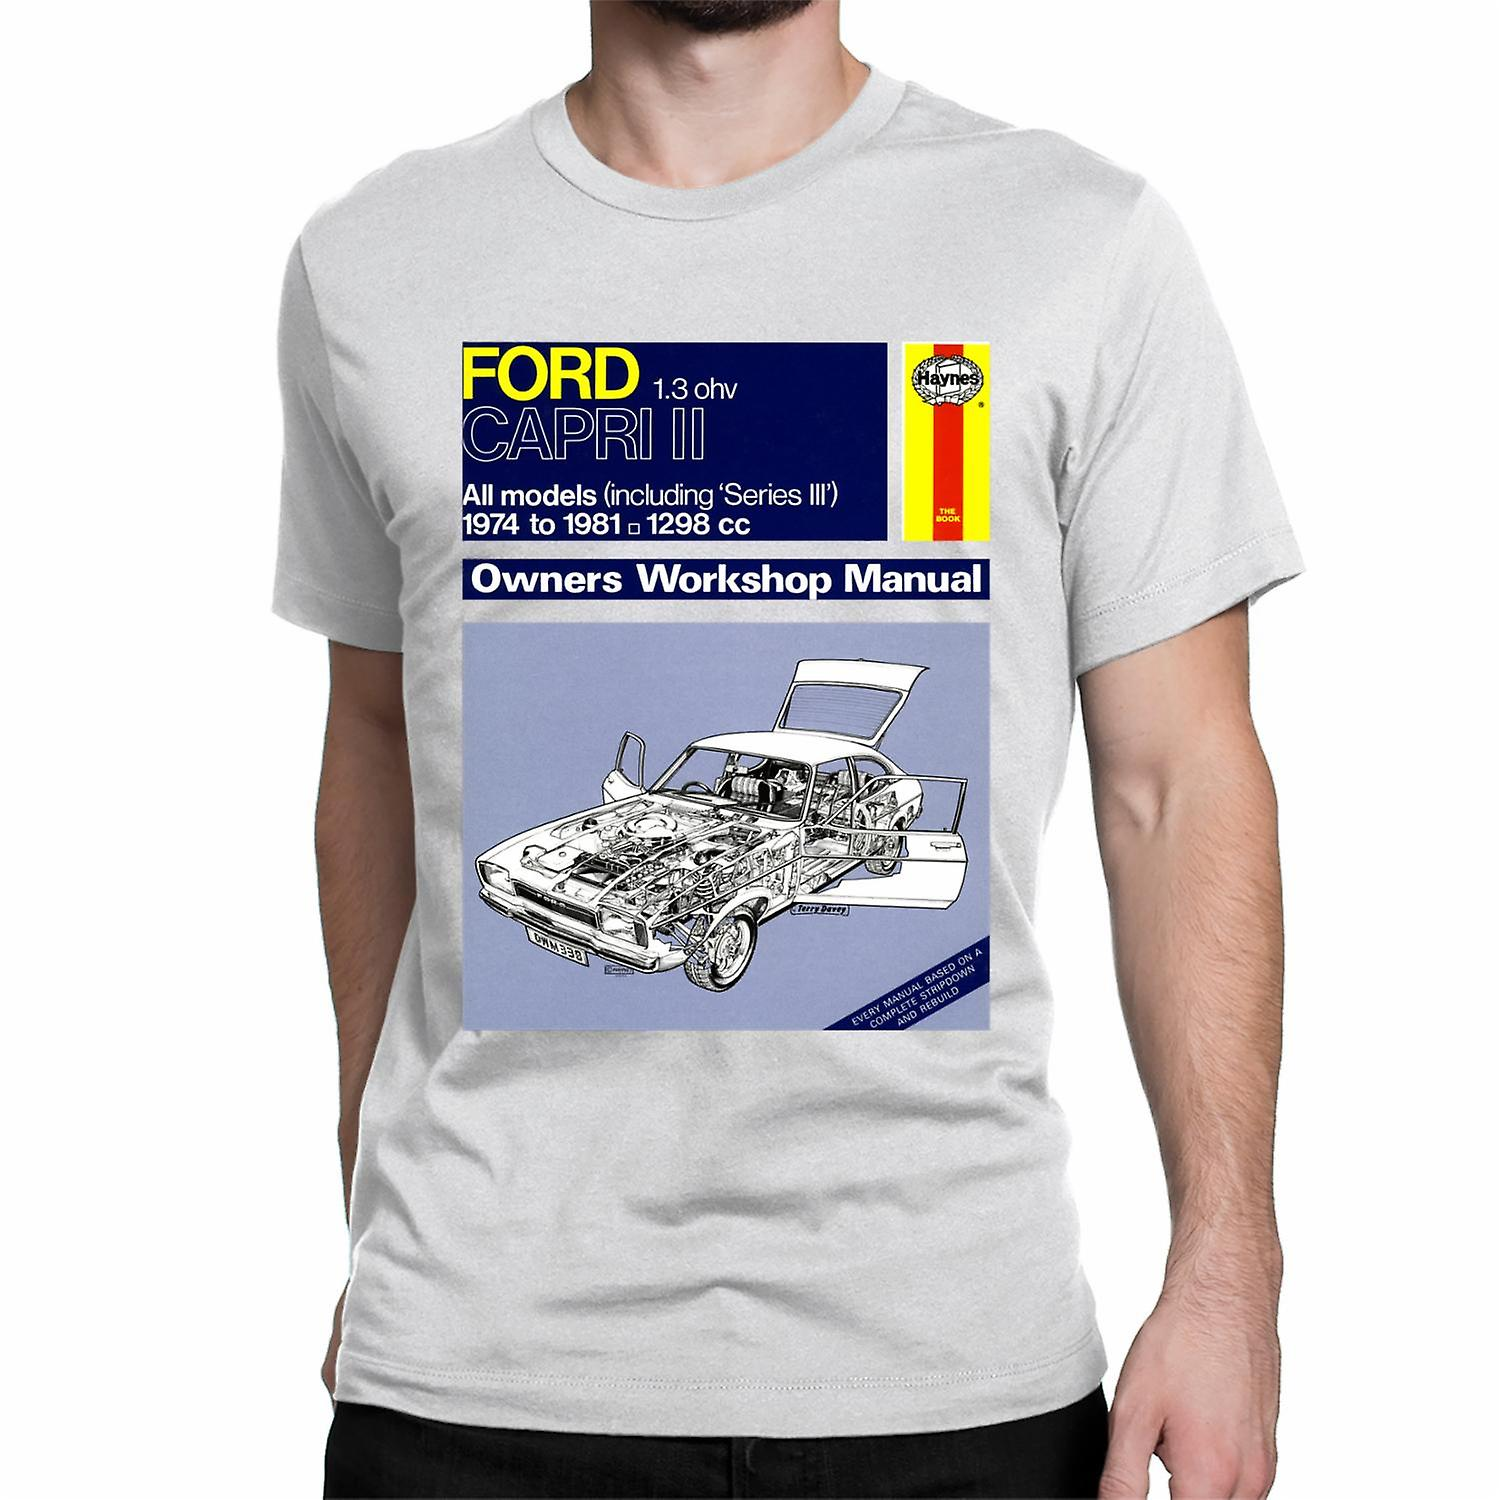 Official Haynes Manual Unisex T-shirt FORD 1.3ohv CAPRI II 1974 to 81. 1298cc Owners Workshop Manual